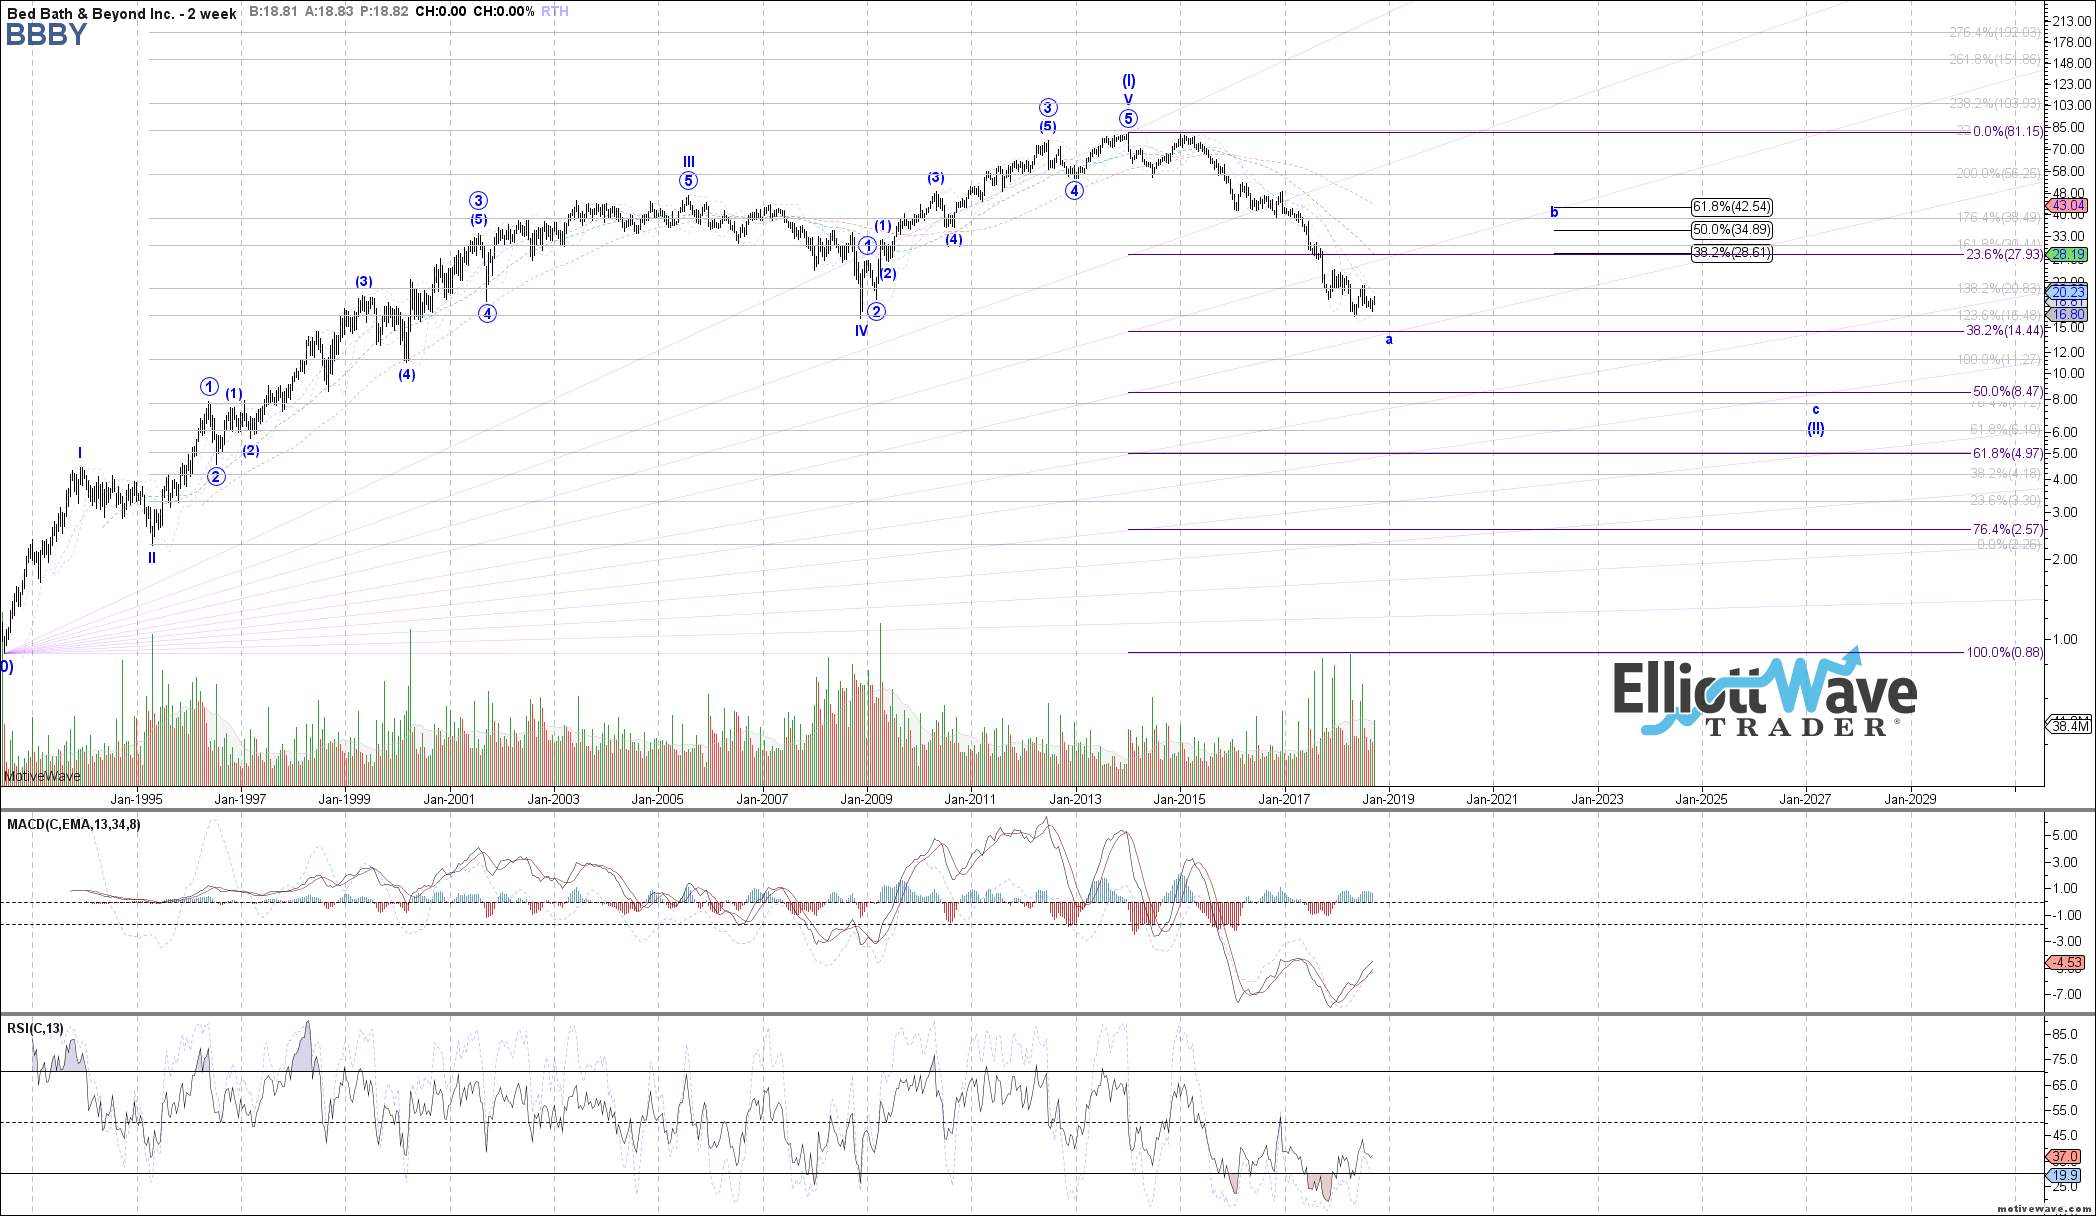 BBBY - Primary Analysis - Sep-26 1321 PM (2 week)